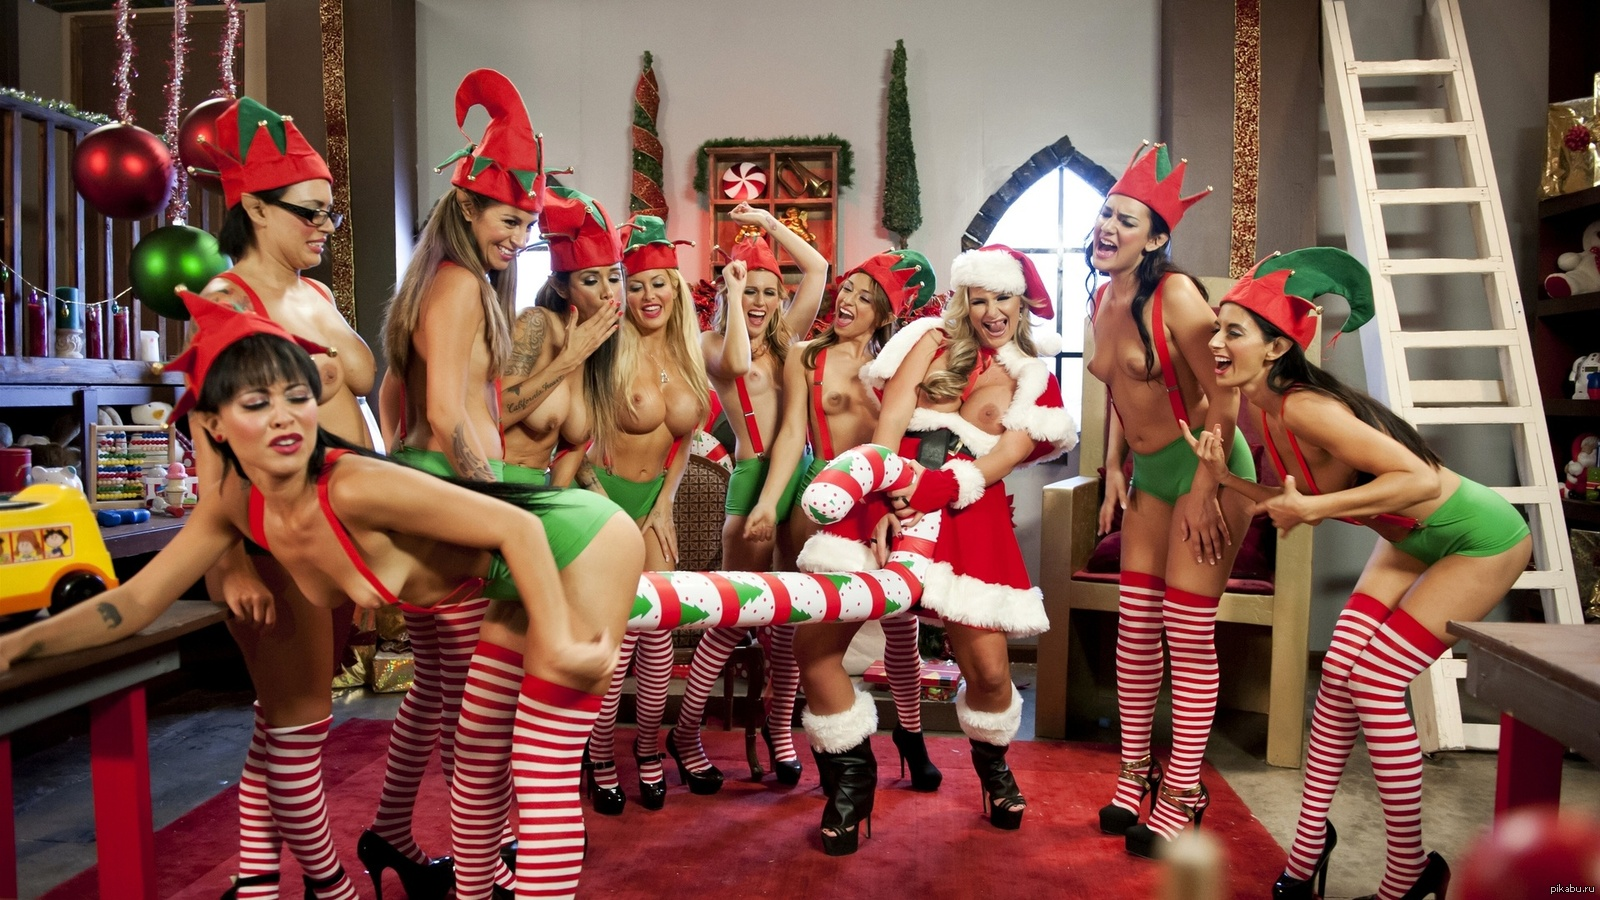 Santa and elves henita pic erotic beauty pornstars